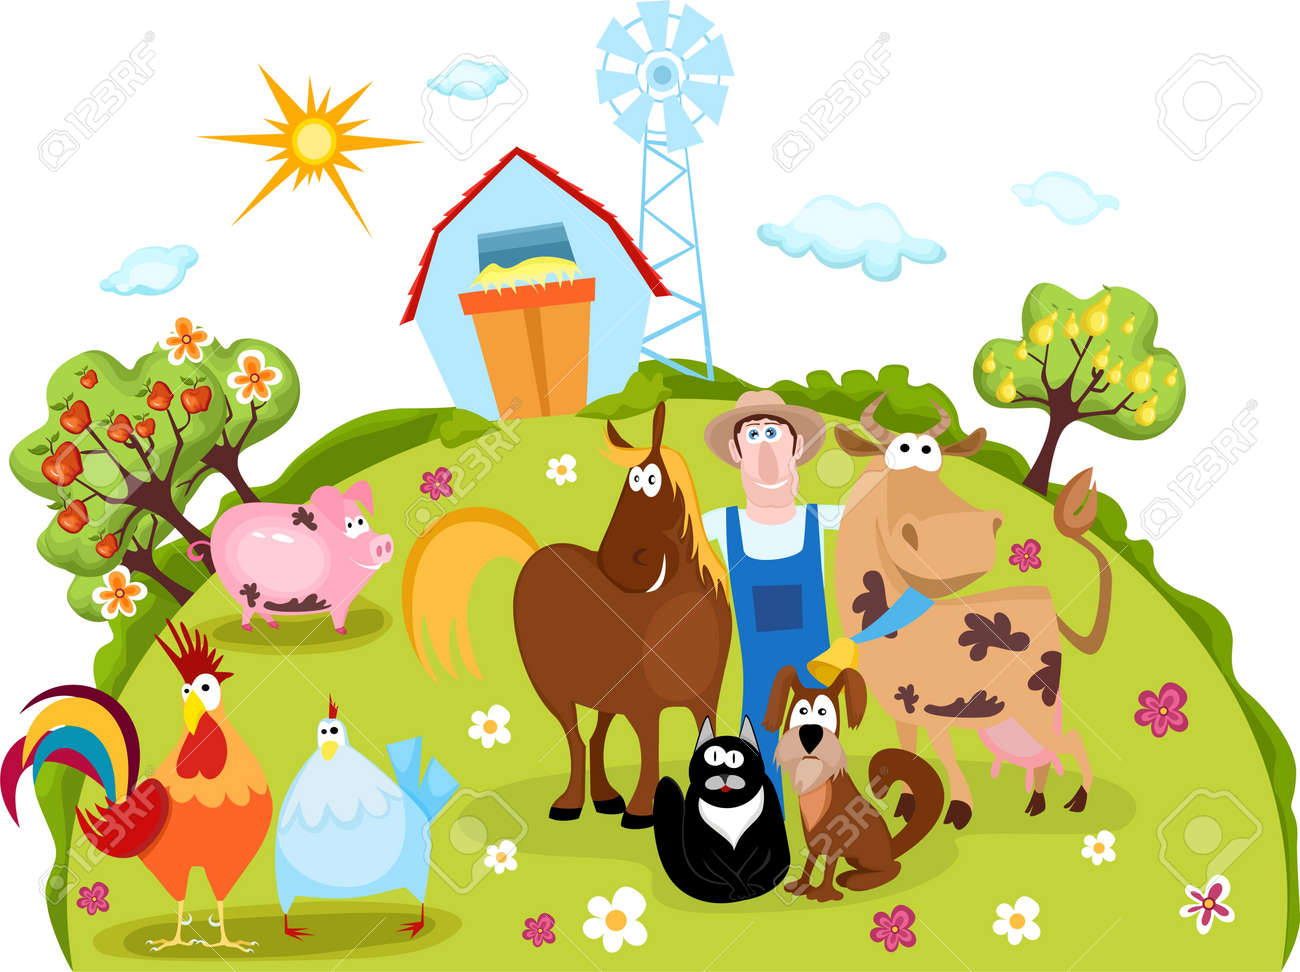 Farm Animals And Farmer Royalty Free Cliparts, Vectors, And Stock ...